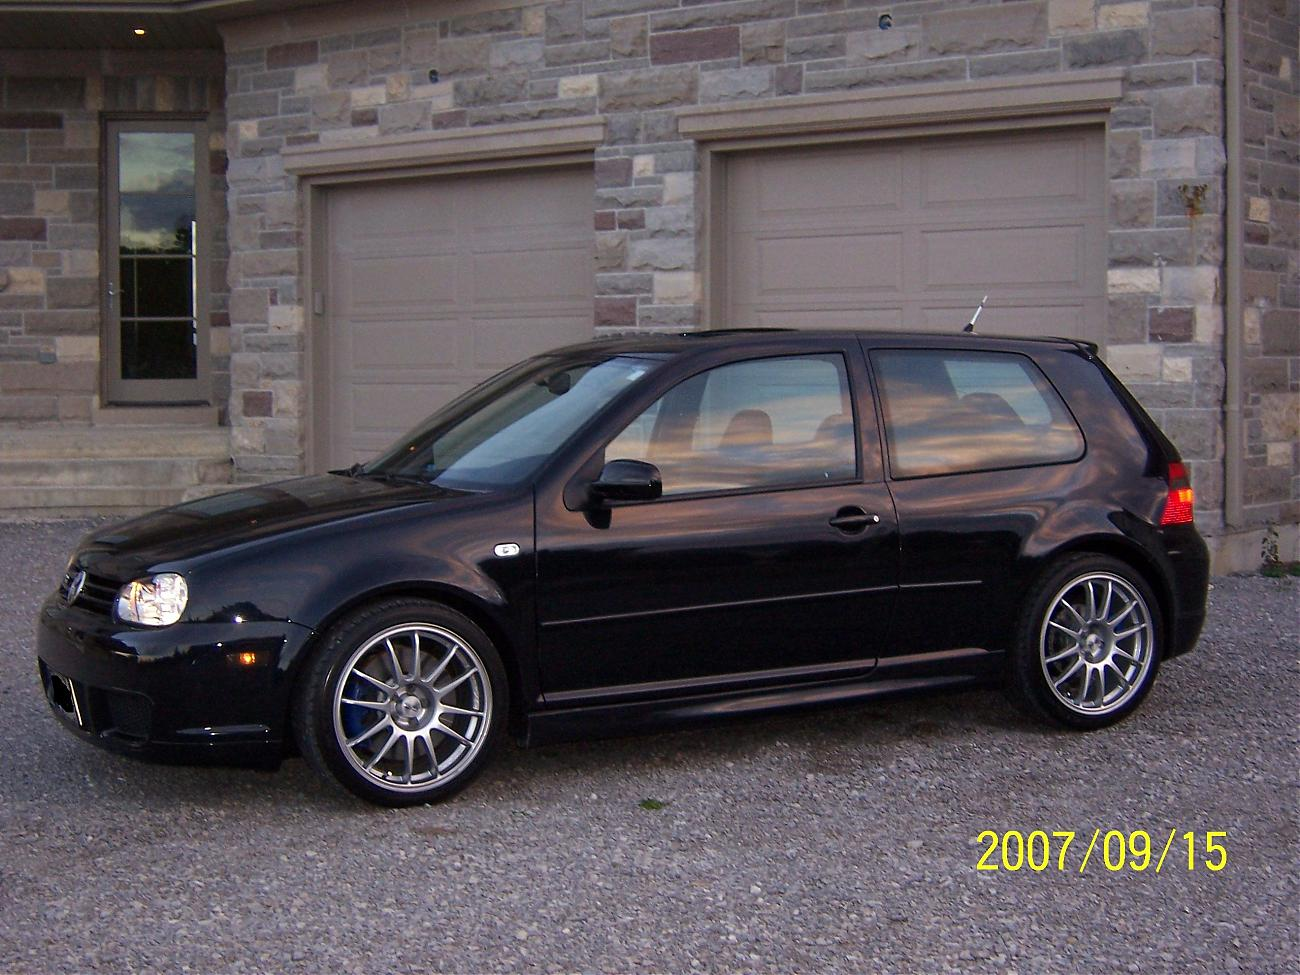 r32 for sale in toronto vw gti forum vw rabbit forum. Black Bedroom Furniture Sets. Home Design Ideas